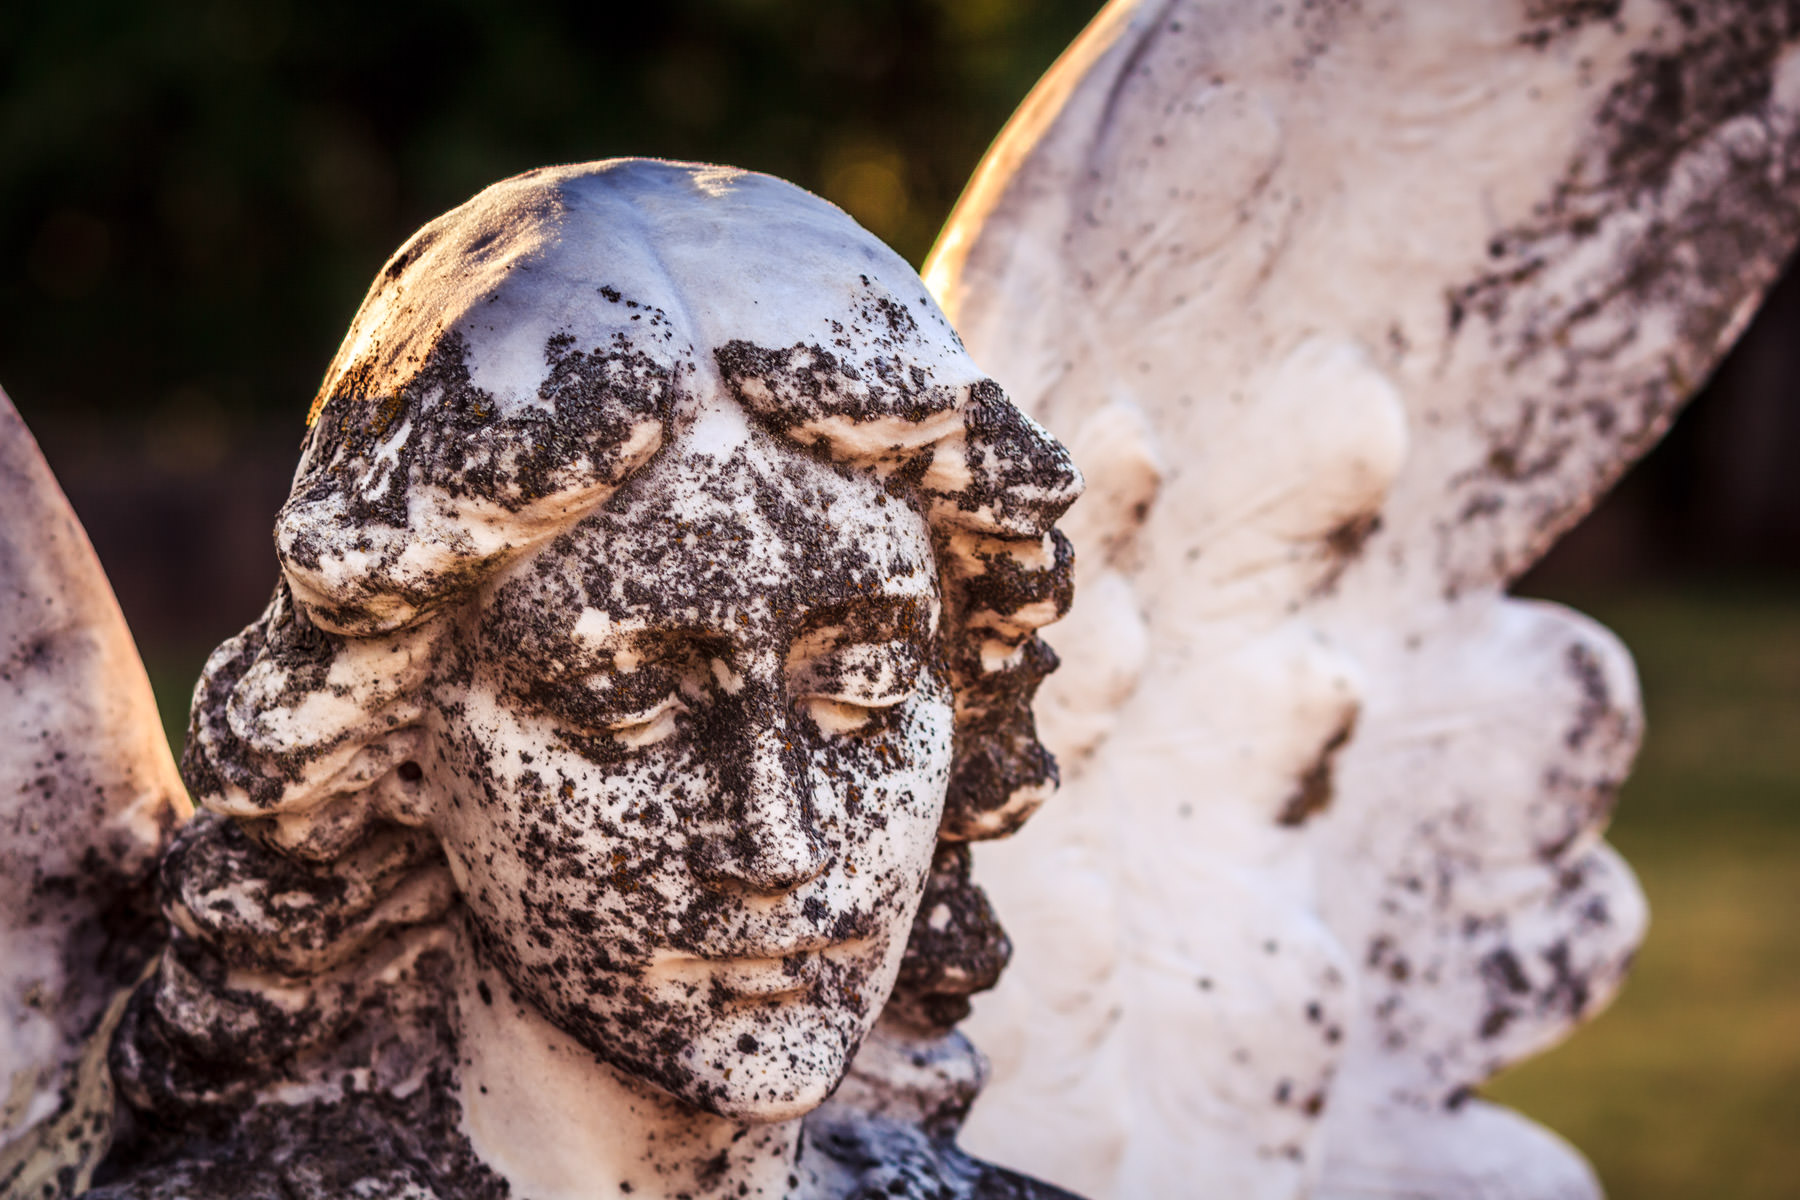 A moss-covered statue of an angel at Oakwood Cemetery, Tyler, Texas.